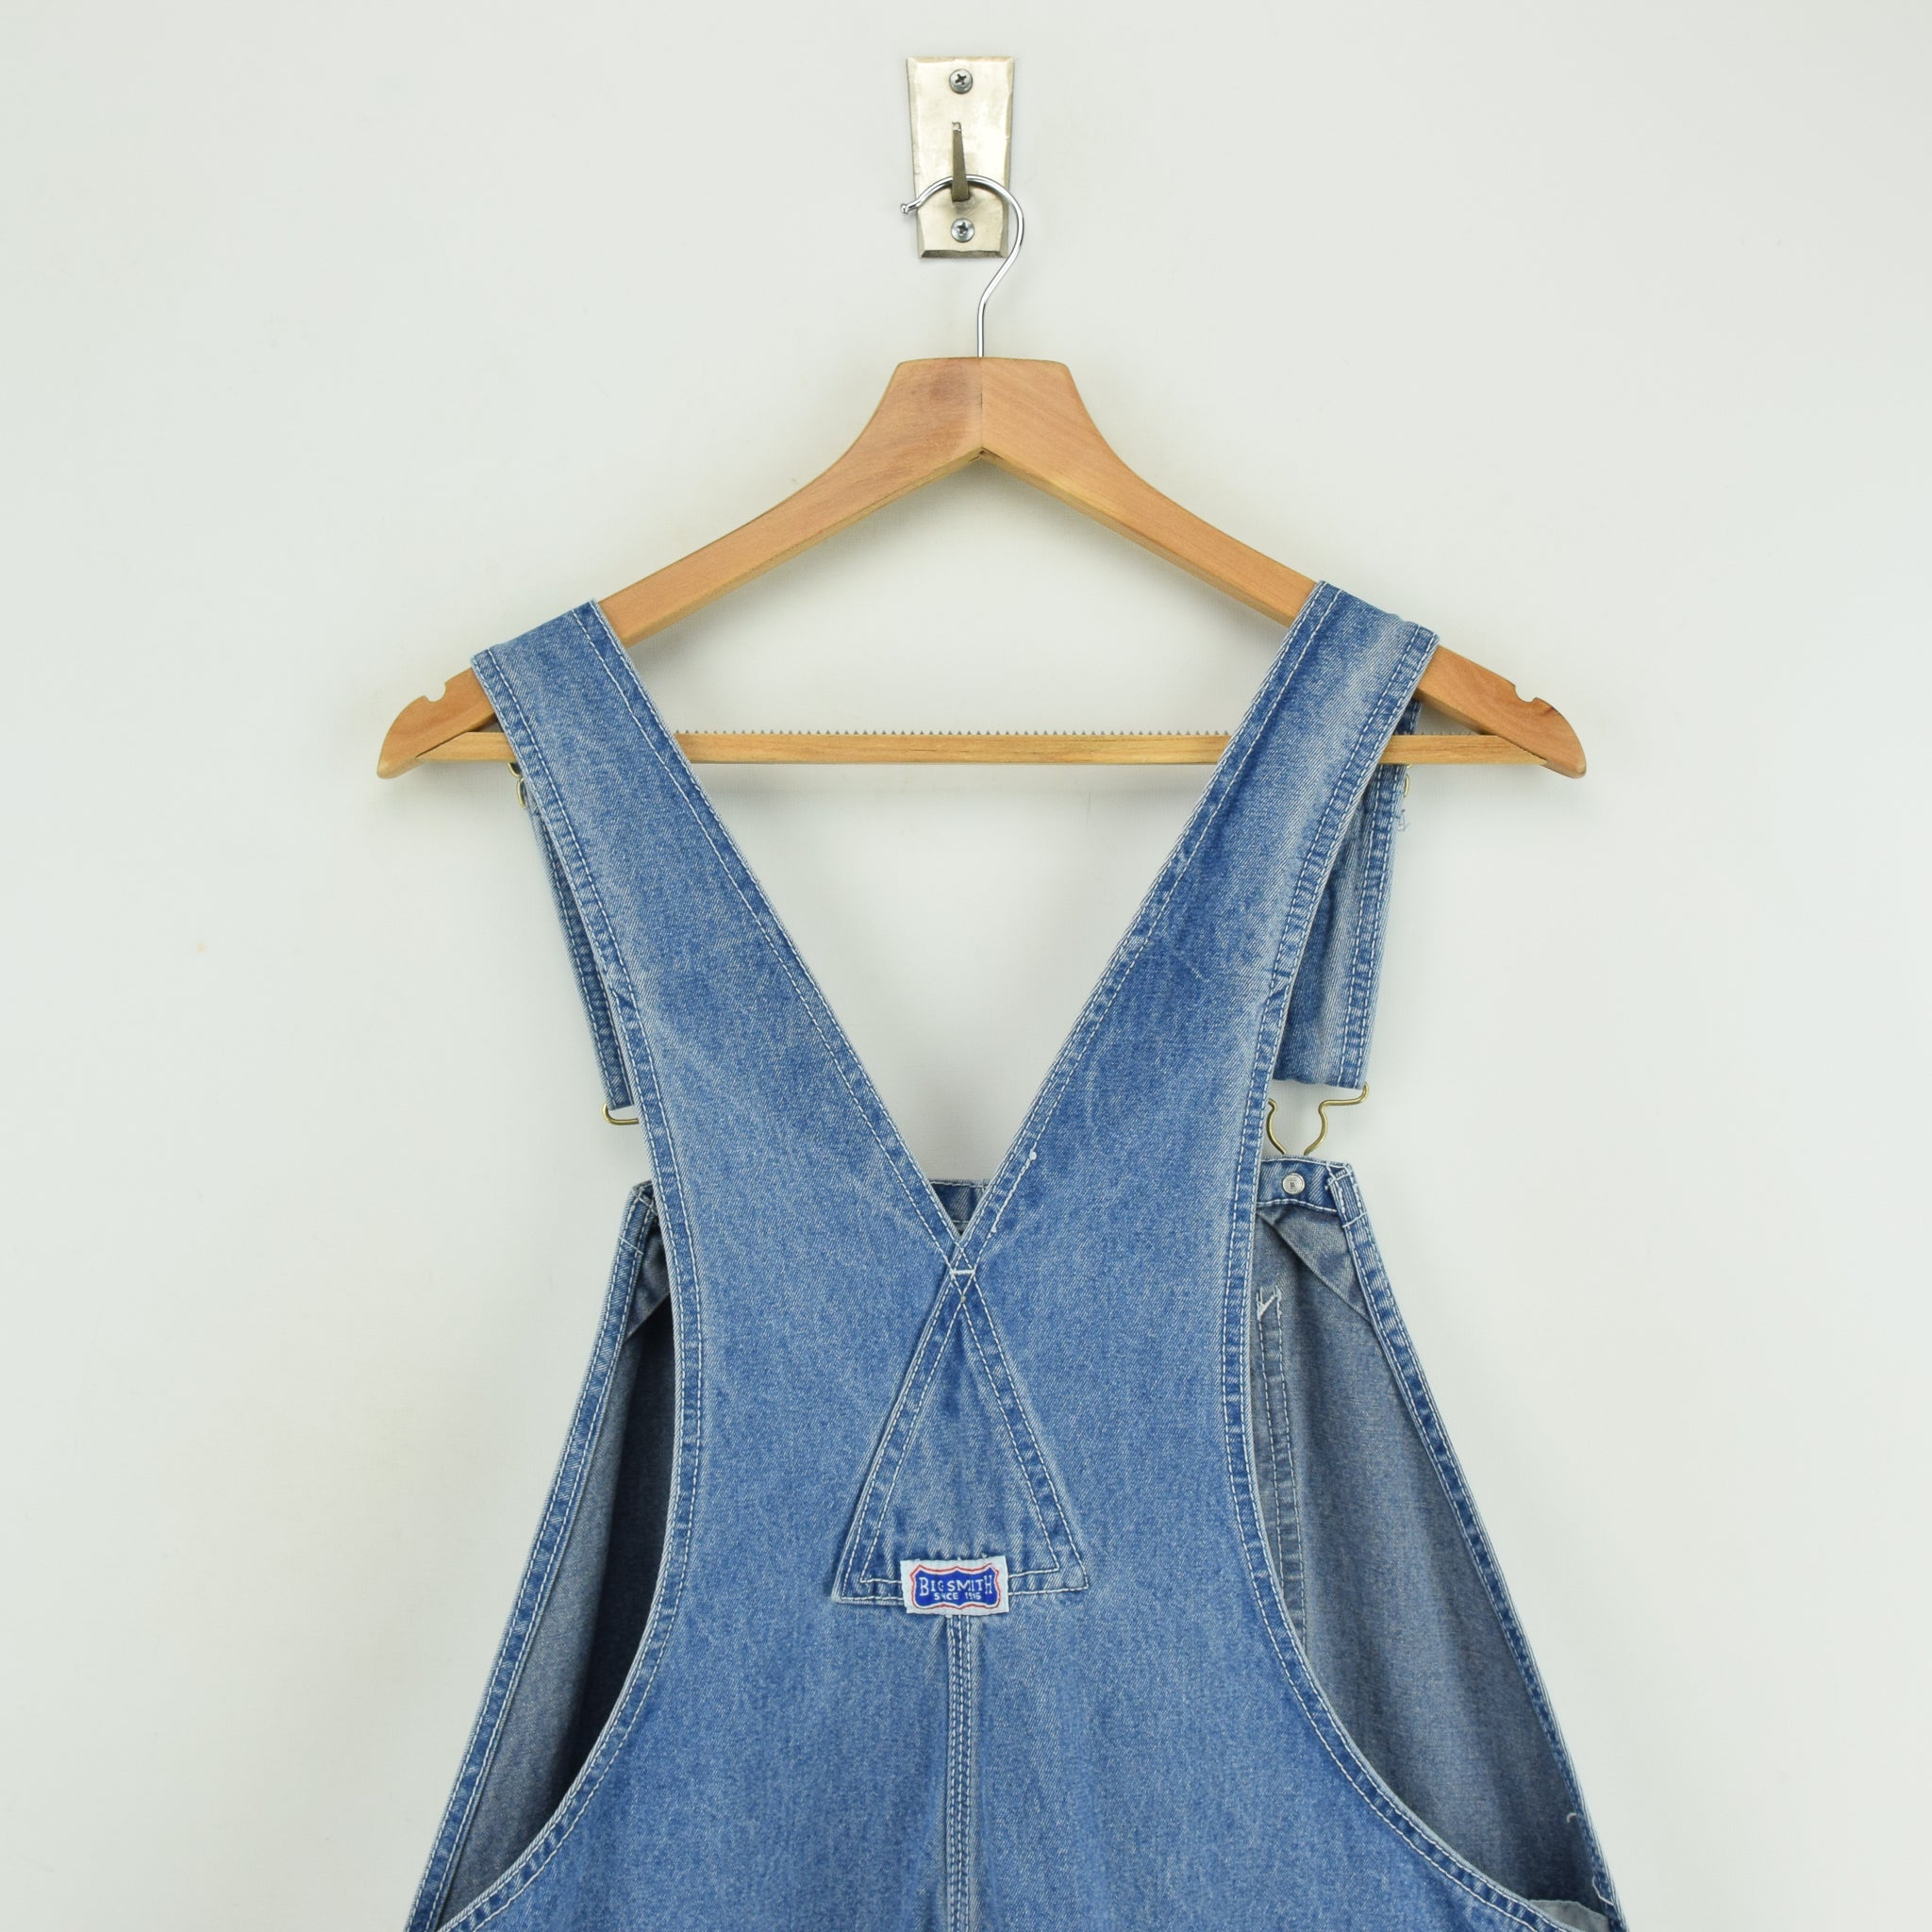 Vintage Big Smith Denim Work Dungarees Blue Bib Overalls Trousers L / XL upper back